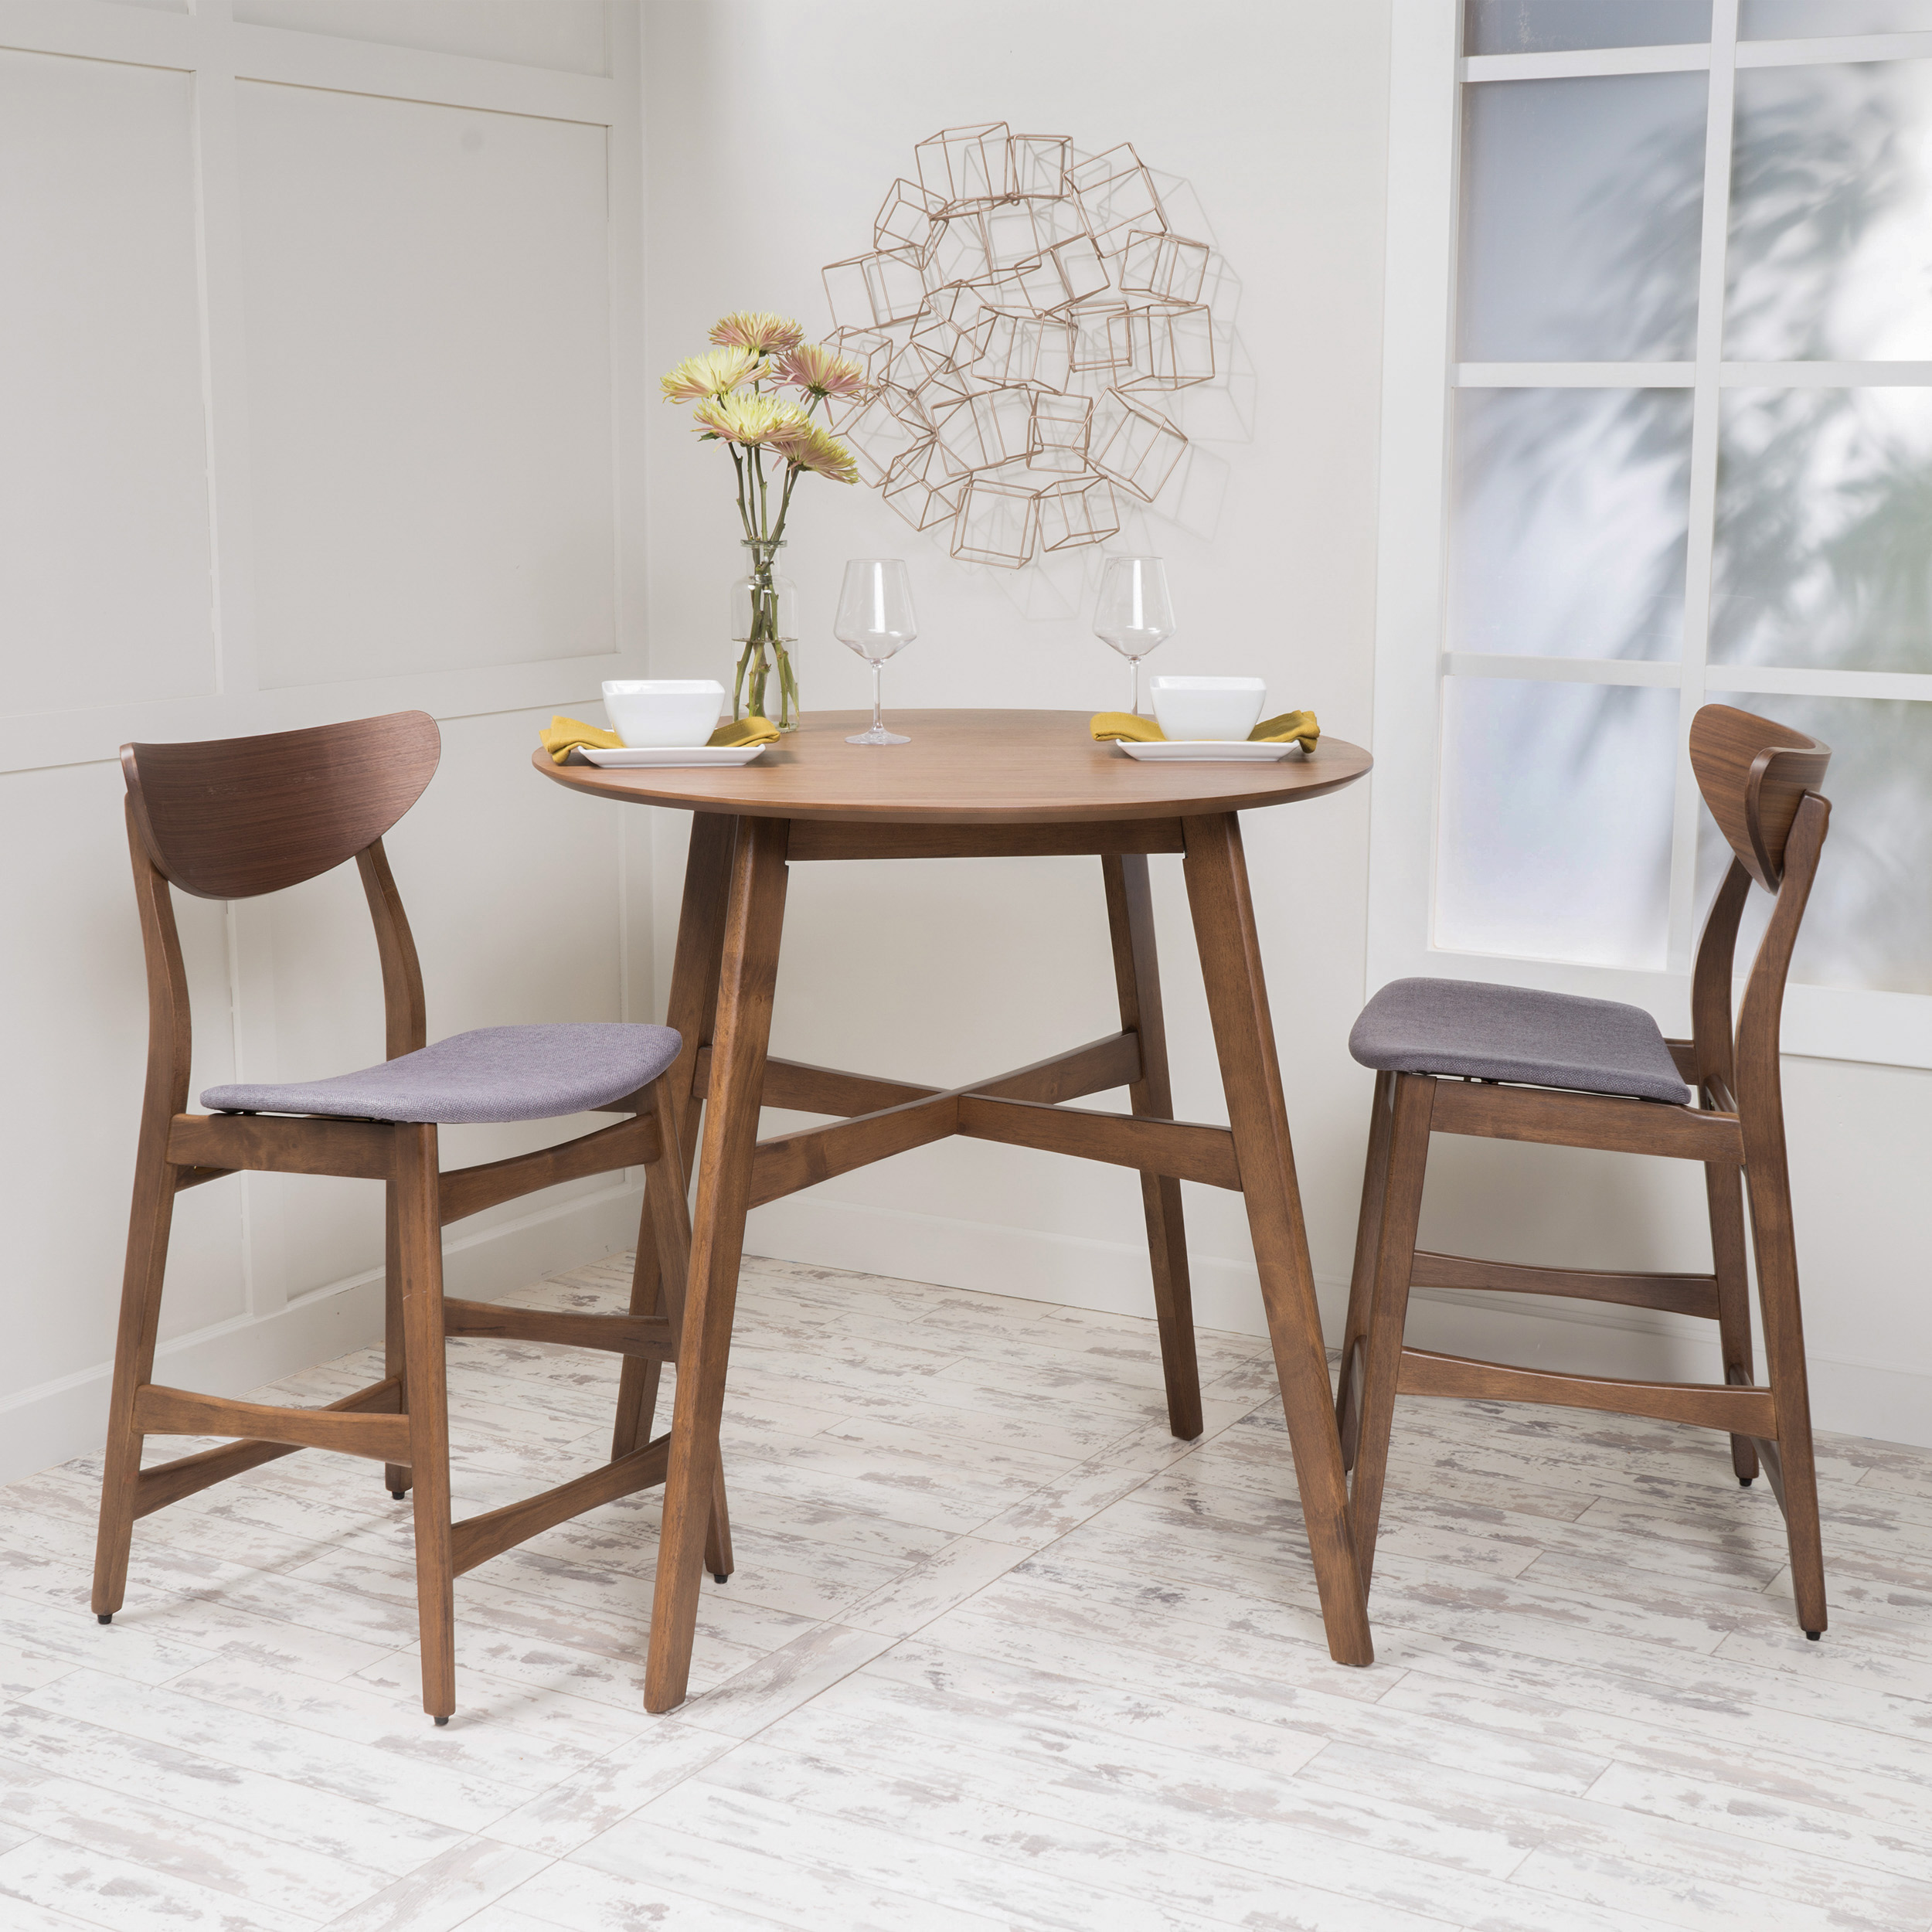 Noble House Mitchell 3 Piece Mid-Century Modern Wood Counter Height Dining Set, Walnut/Grey